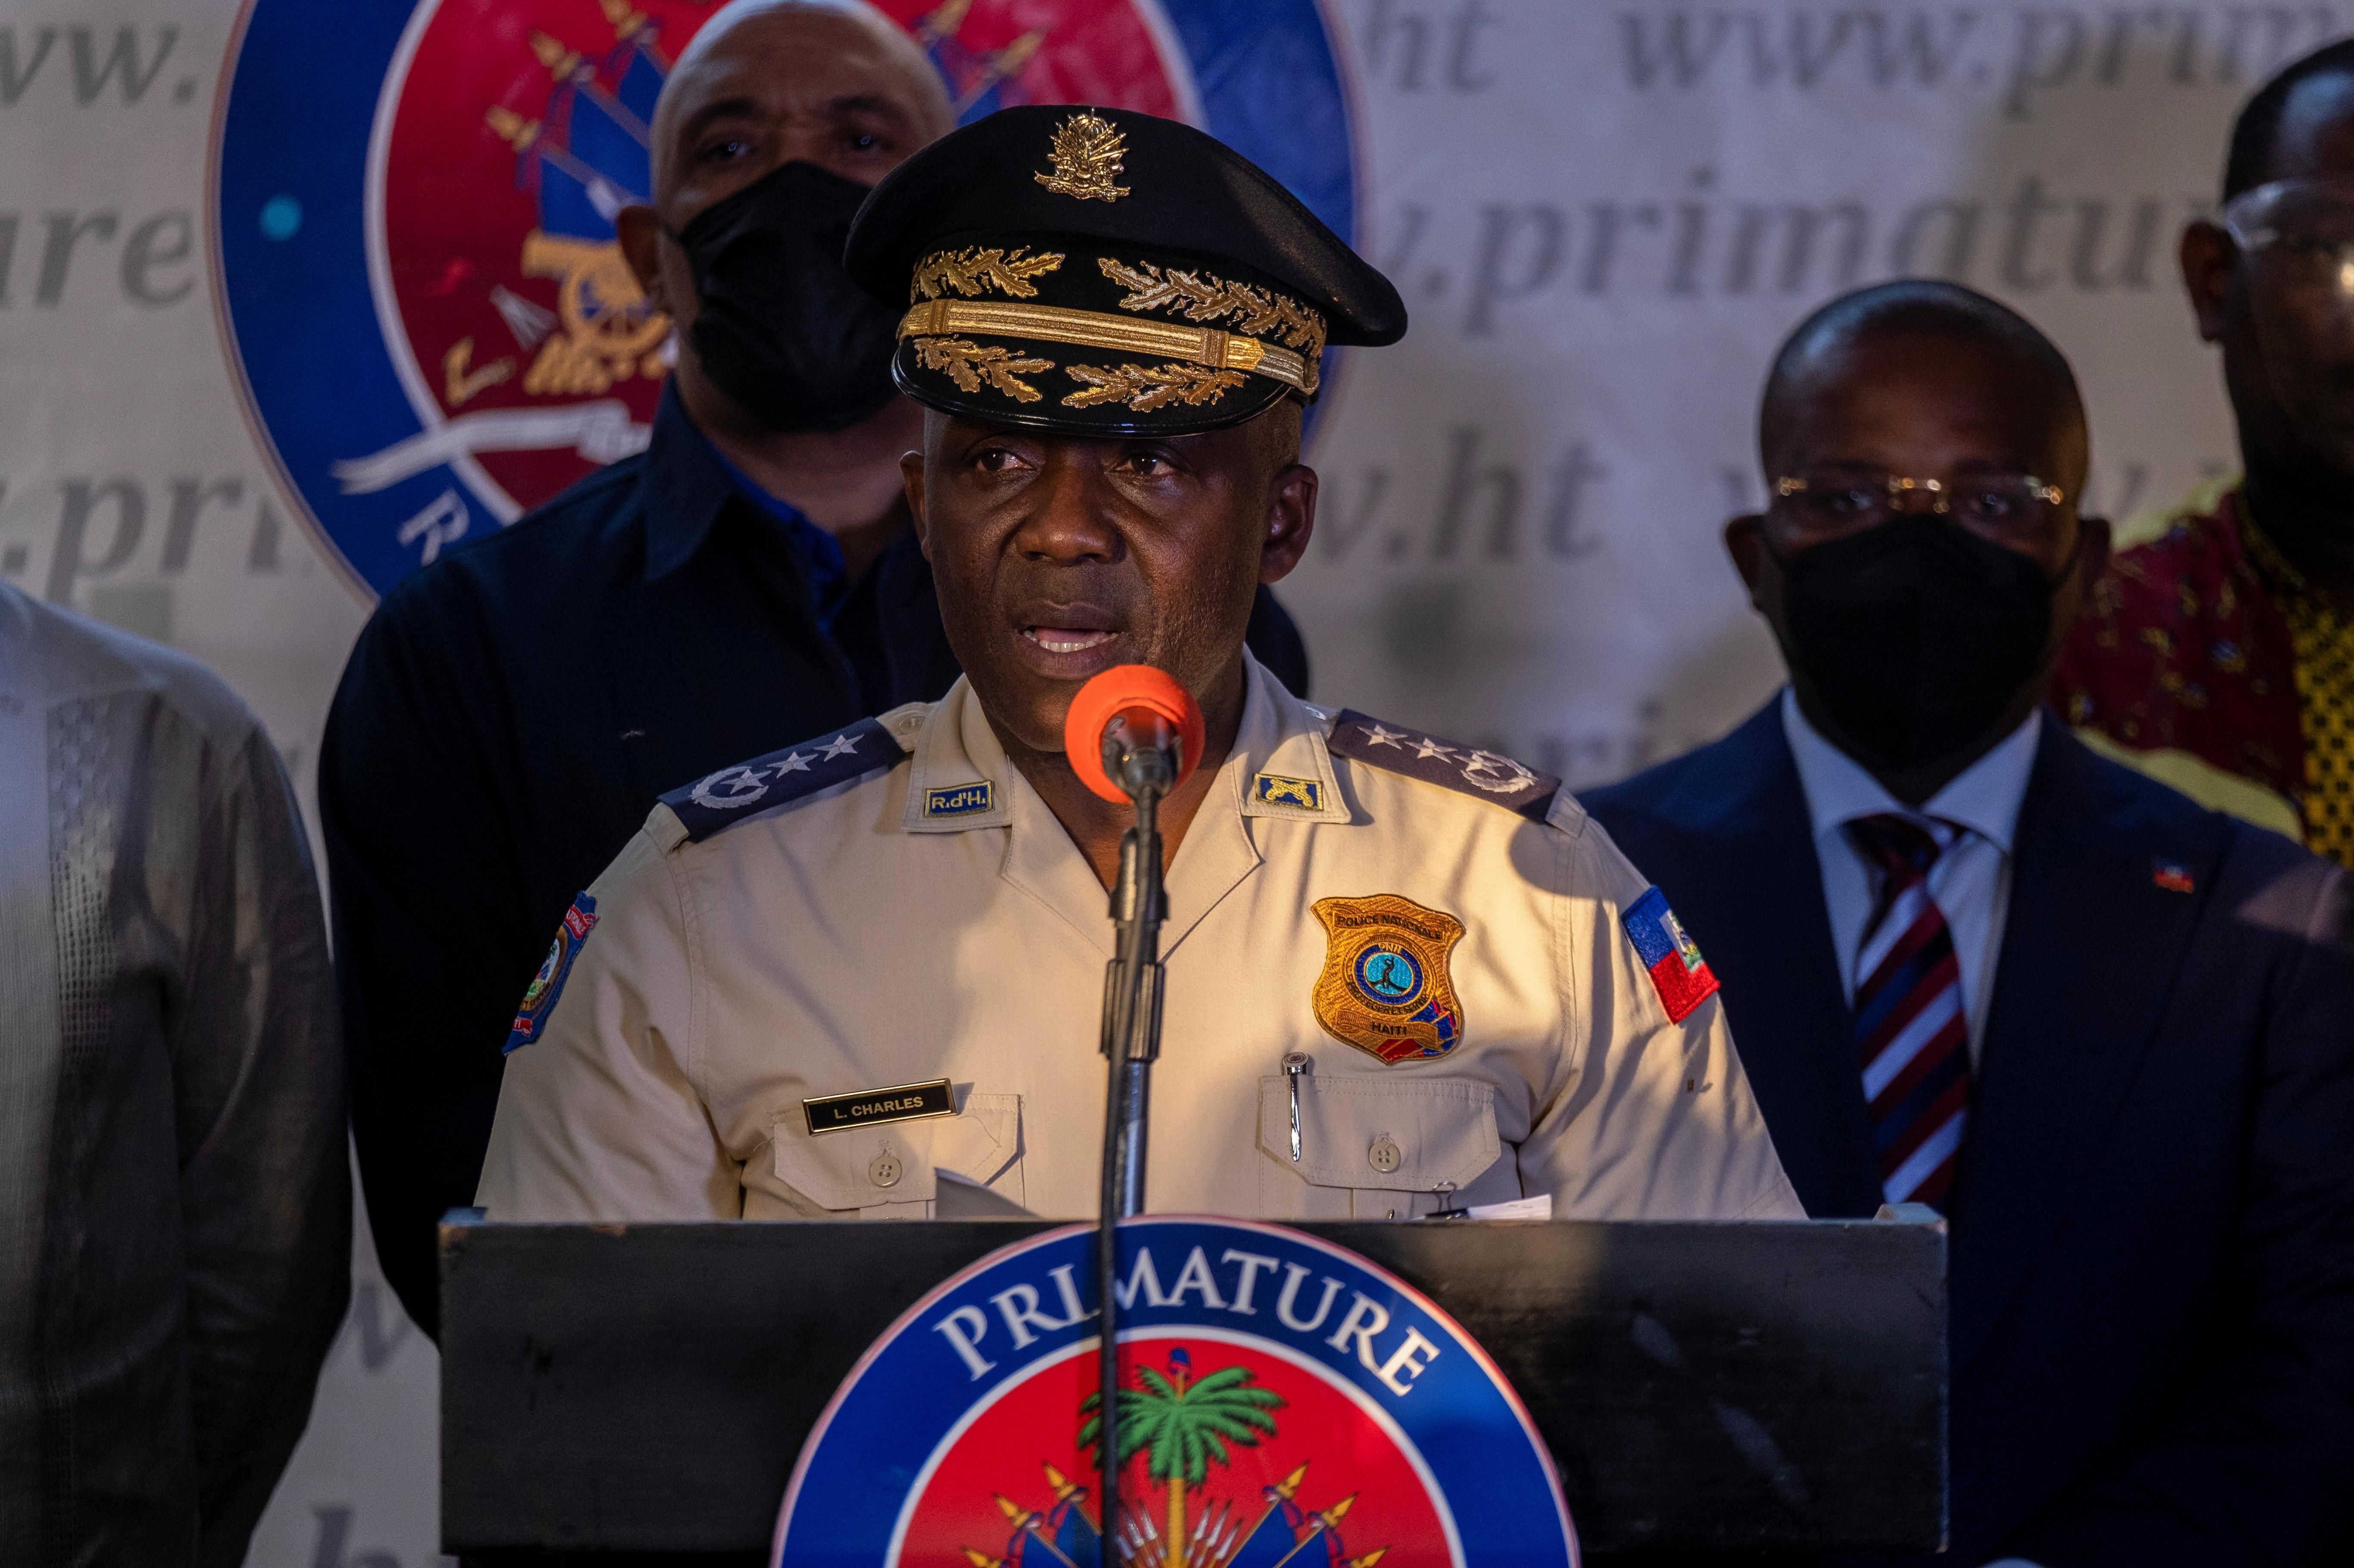 Haiti's Head of Haitian National Police, Leon Charles speaks during a news conference following the assassination of President Jovenel Moise, in Port-au-Prince, Haiti July 11, 2021